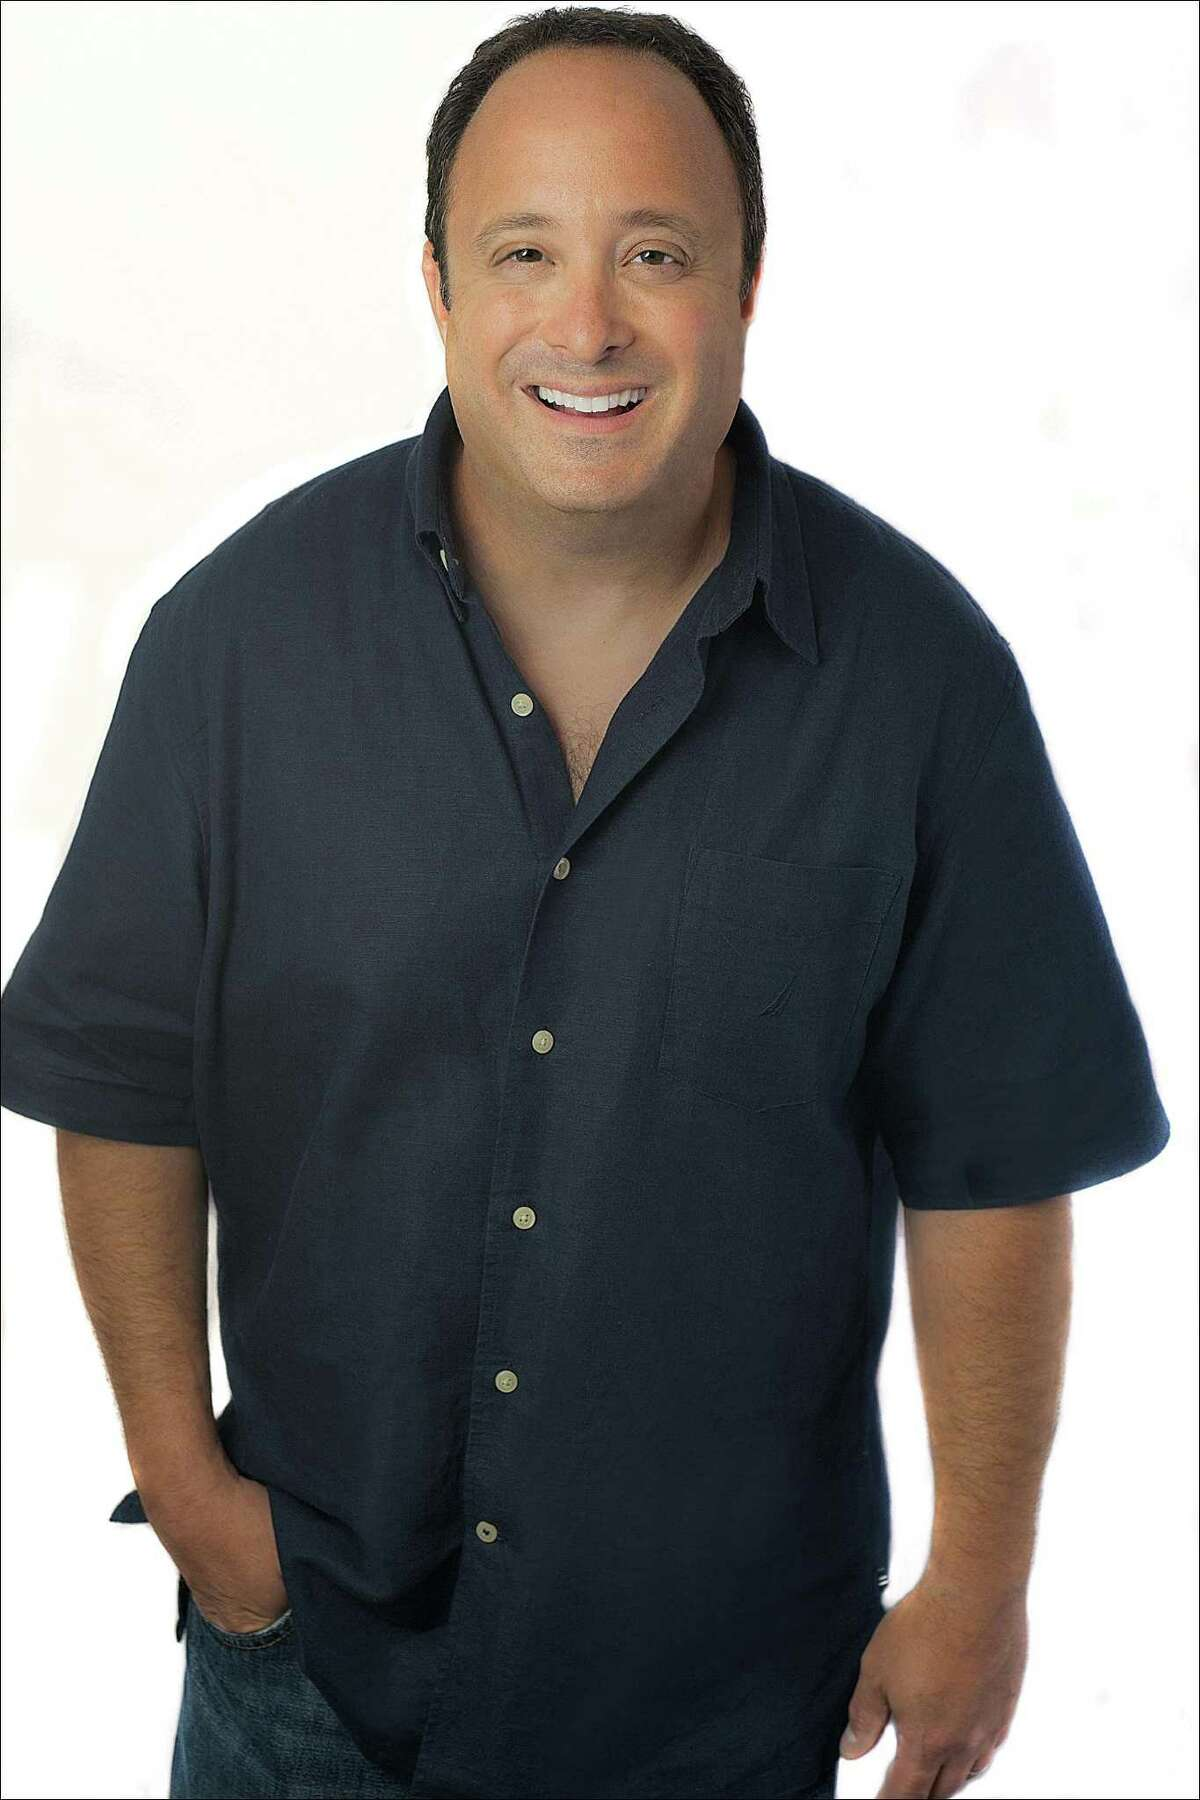 Brad Trackman will headline at the Treehouse Comedy Club in Westport on April 14.